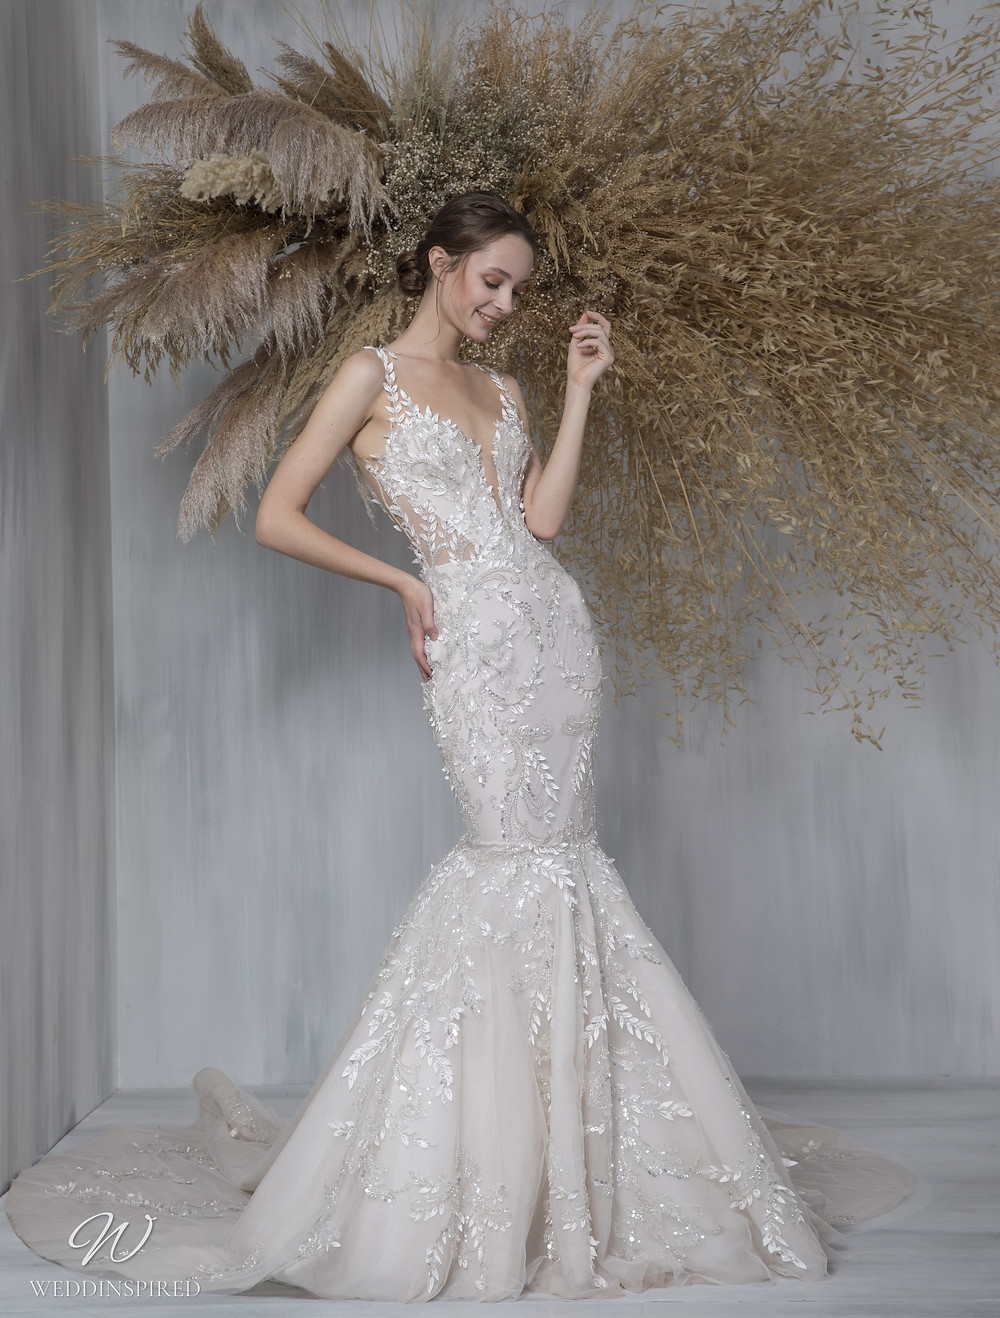 A Tony Ward 2021 lace mermaid wedding dress with straps and a train